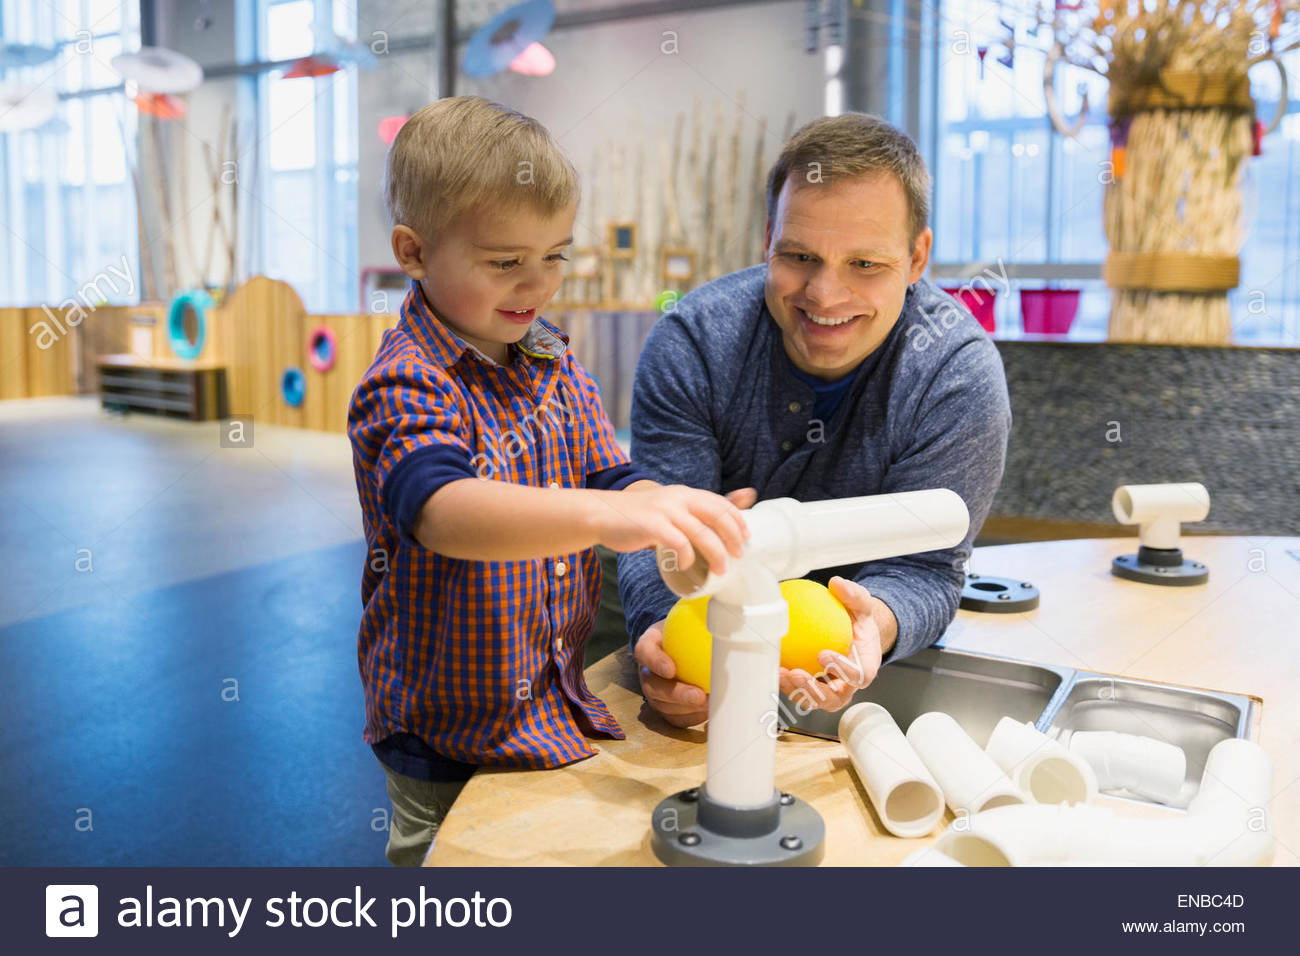 Father and son assembling pipeline at science center - Stock Image